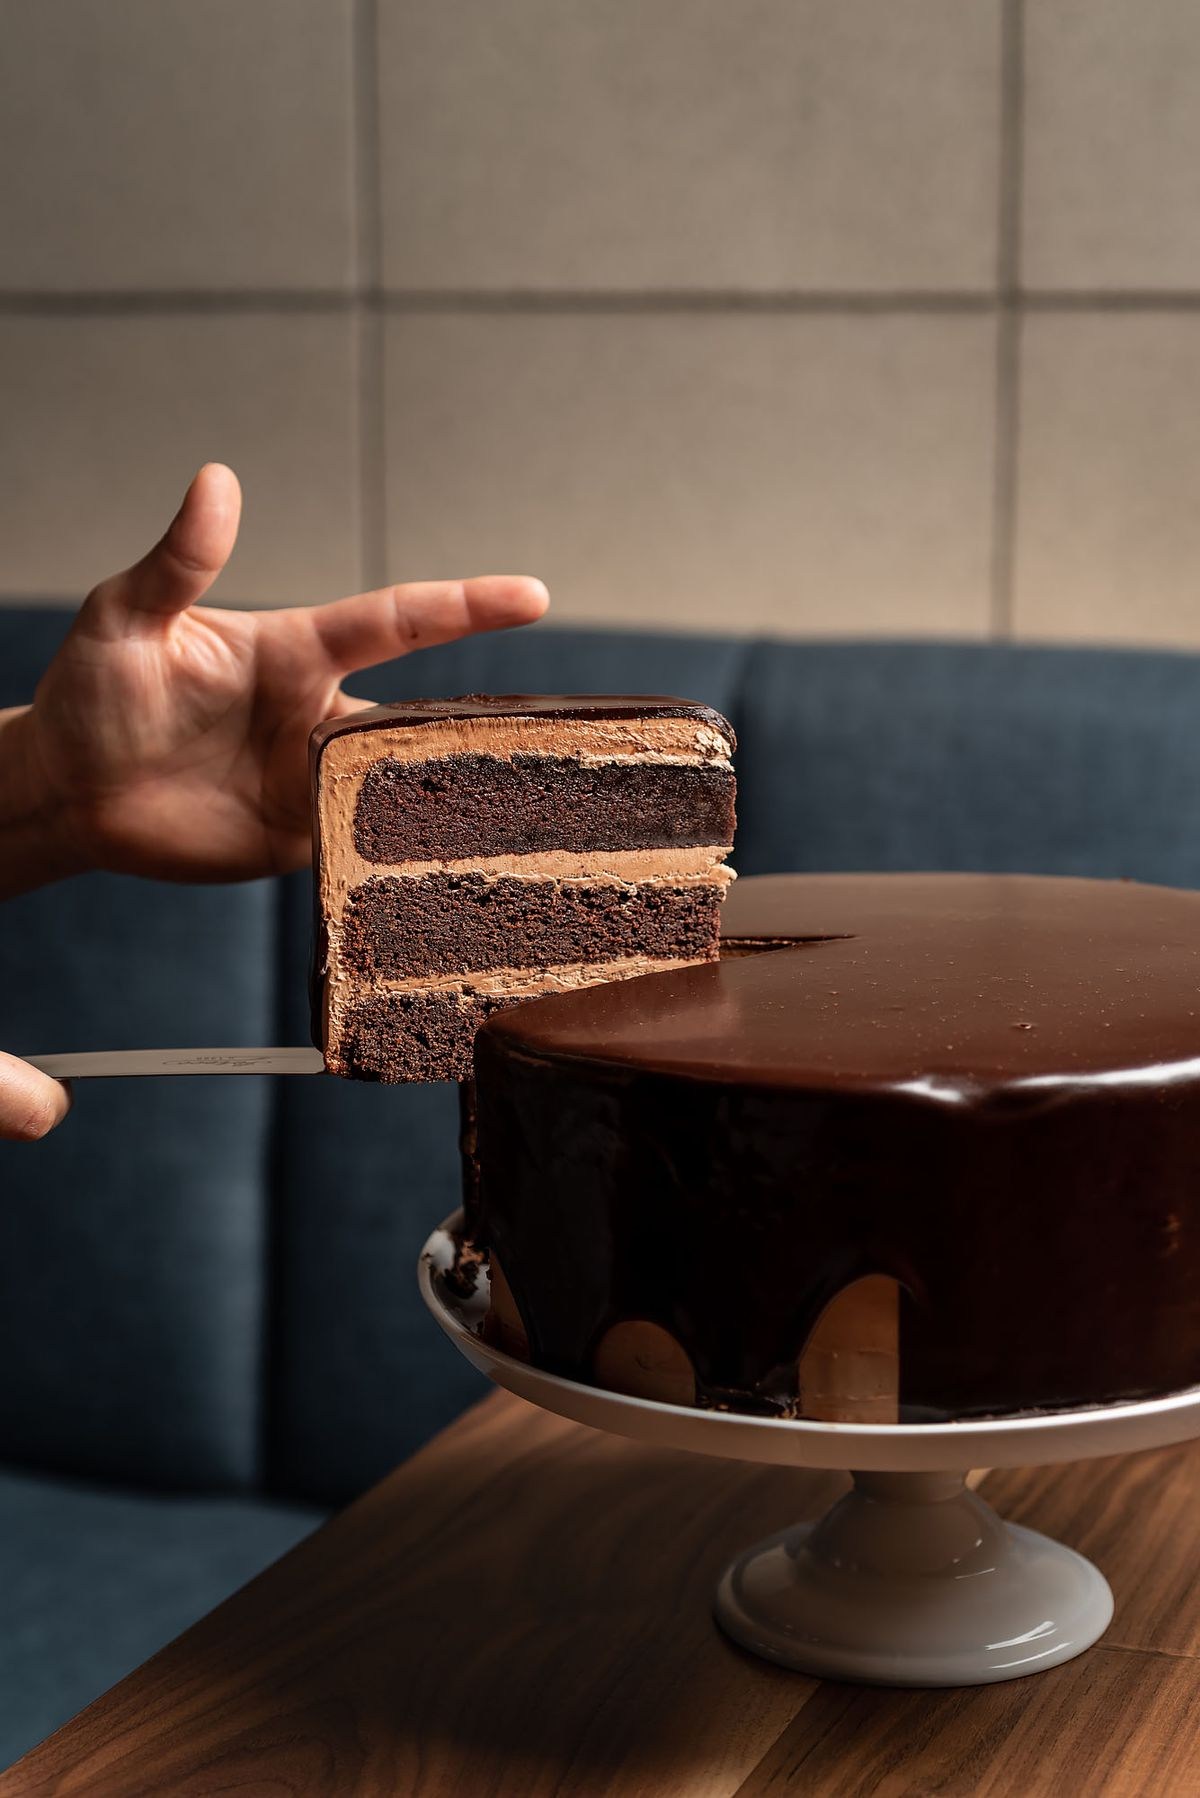 A thick slice of rich chocolate cake from Birdie G's.